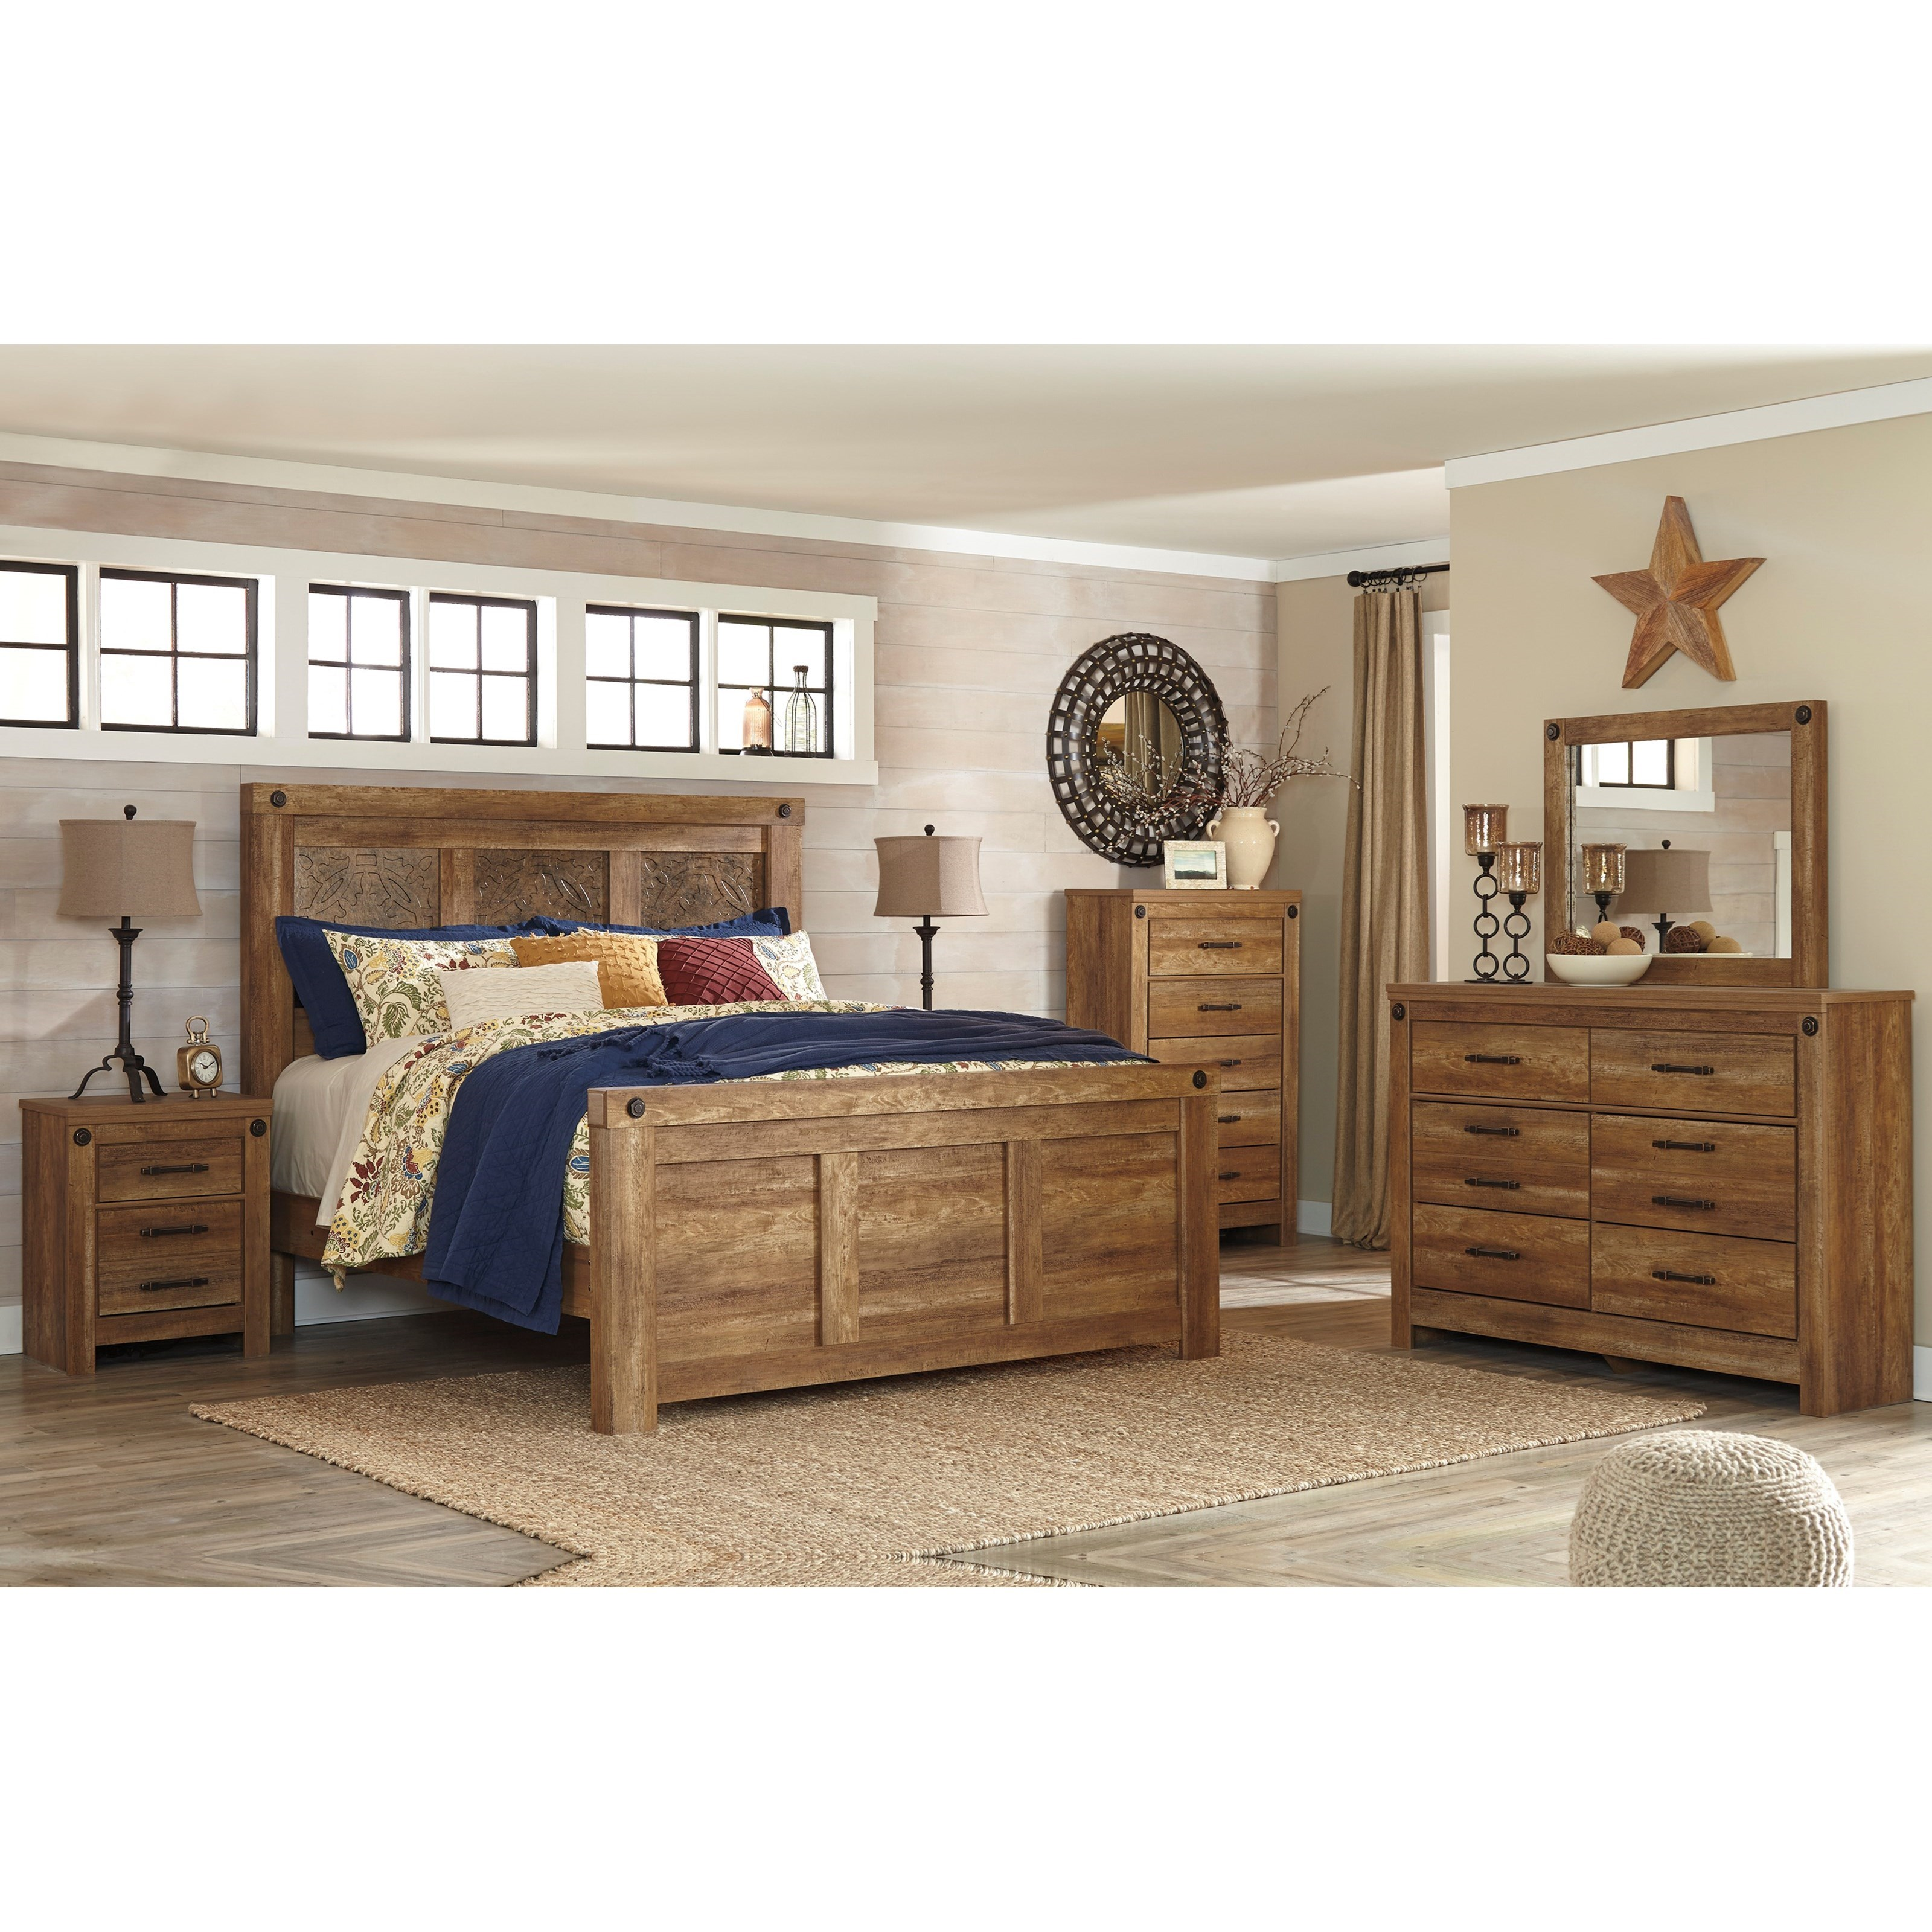 Signature Design by Ashley Ladimier King Bedroom Group - Item Number: B399 K Bedroom Group 1